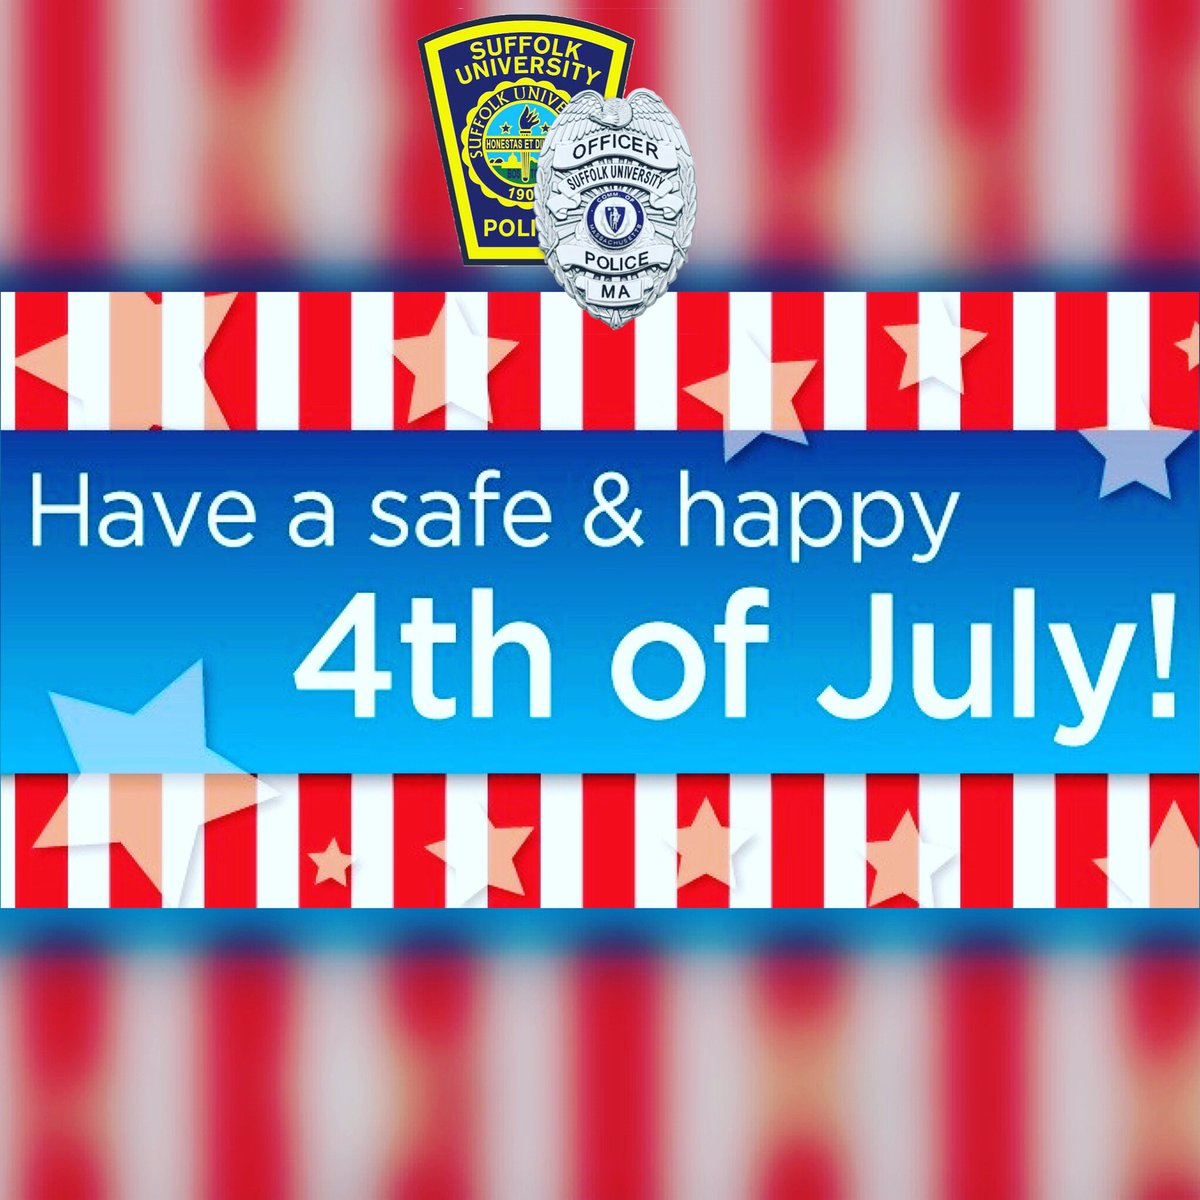 Wishing Everyone a Fun & Safe 4th of July! Please remember to celebrate responsibly. https://t.co/AAjRS5Zibb